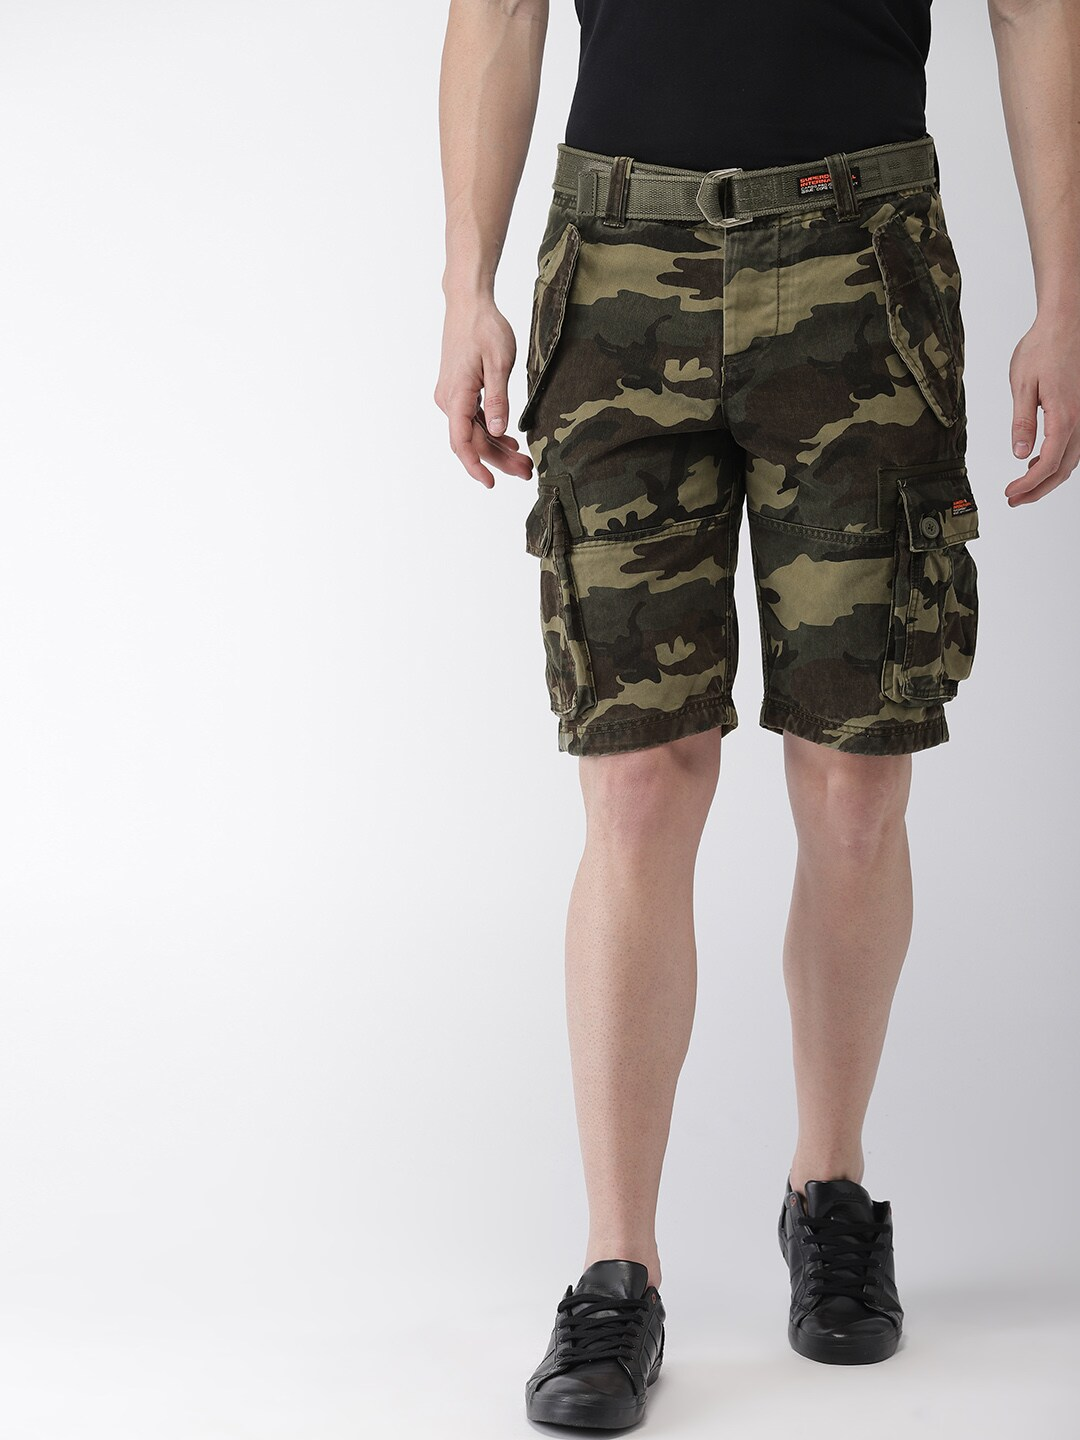 cd0f995045 Cargo 7th Shorts - Buy Cargo 7th Shorts online in India